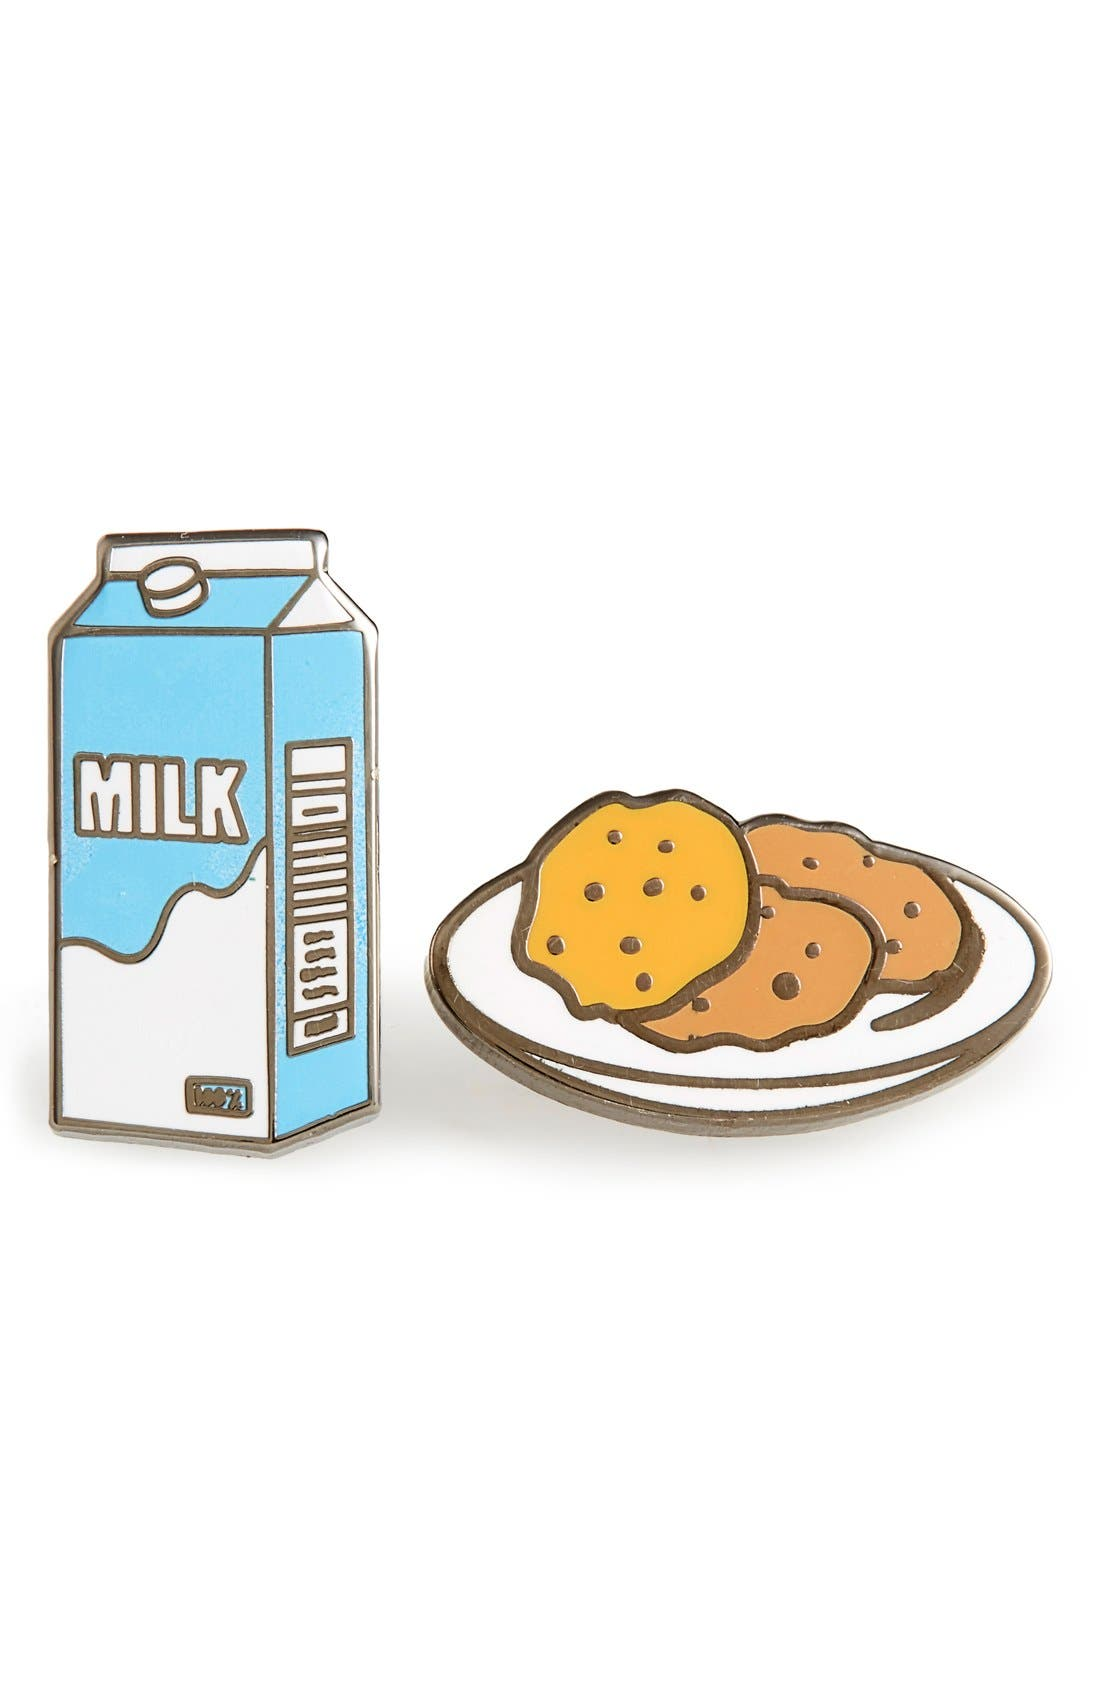 Alternate Image 1 Selected - PINTRILL 'Milk & Cookies' Fashion Accessory Pins (Set of 2)